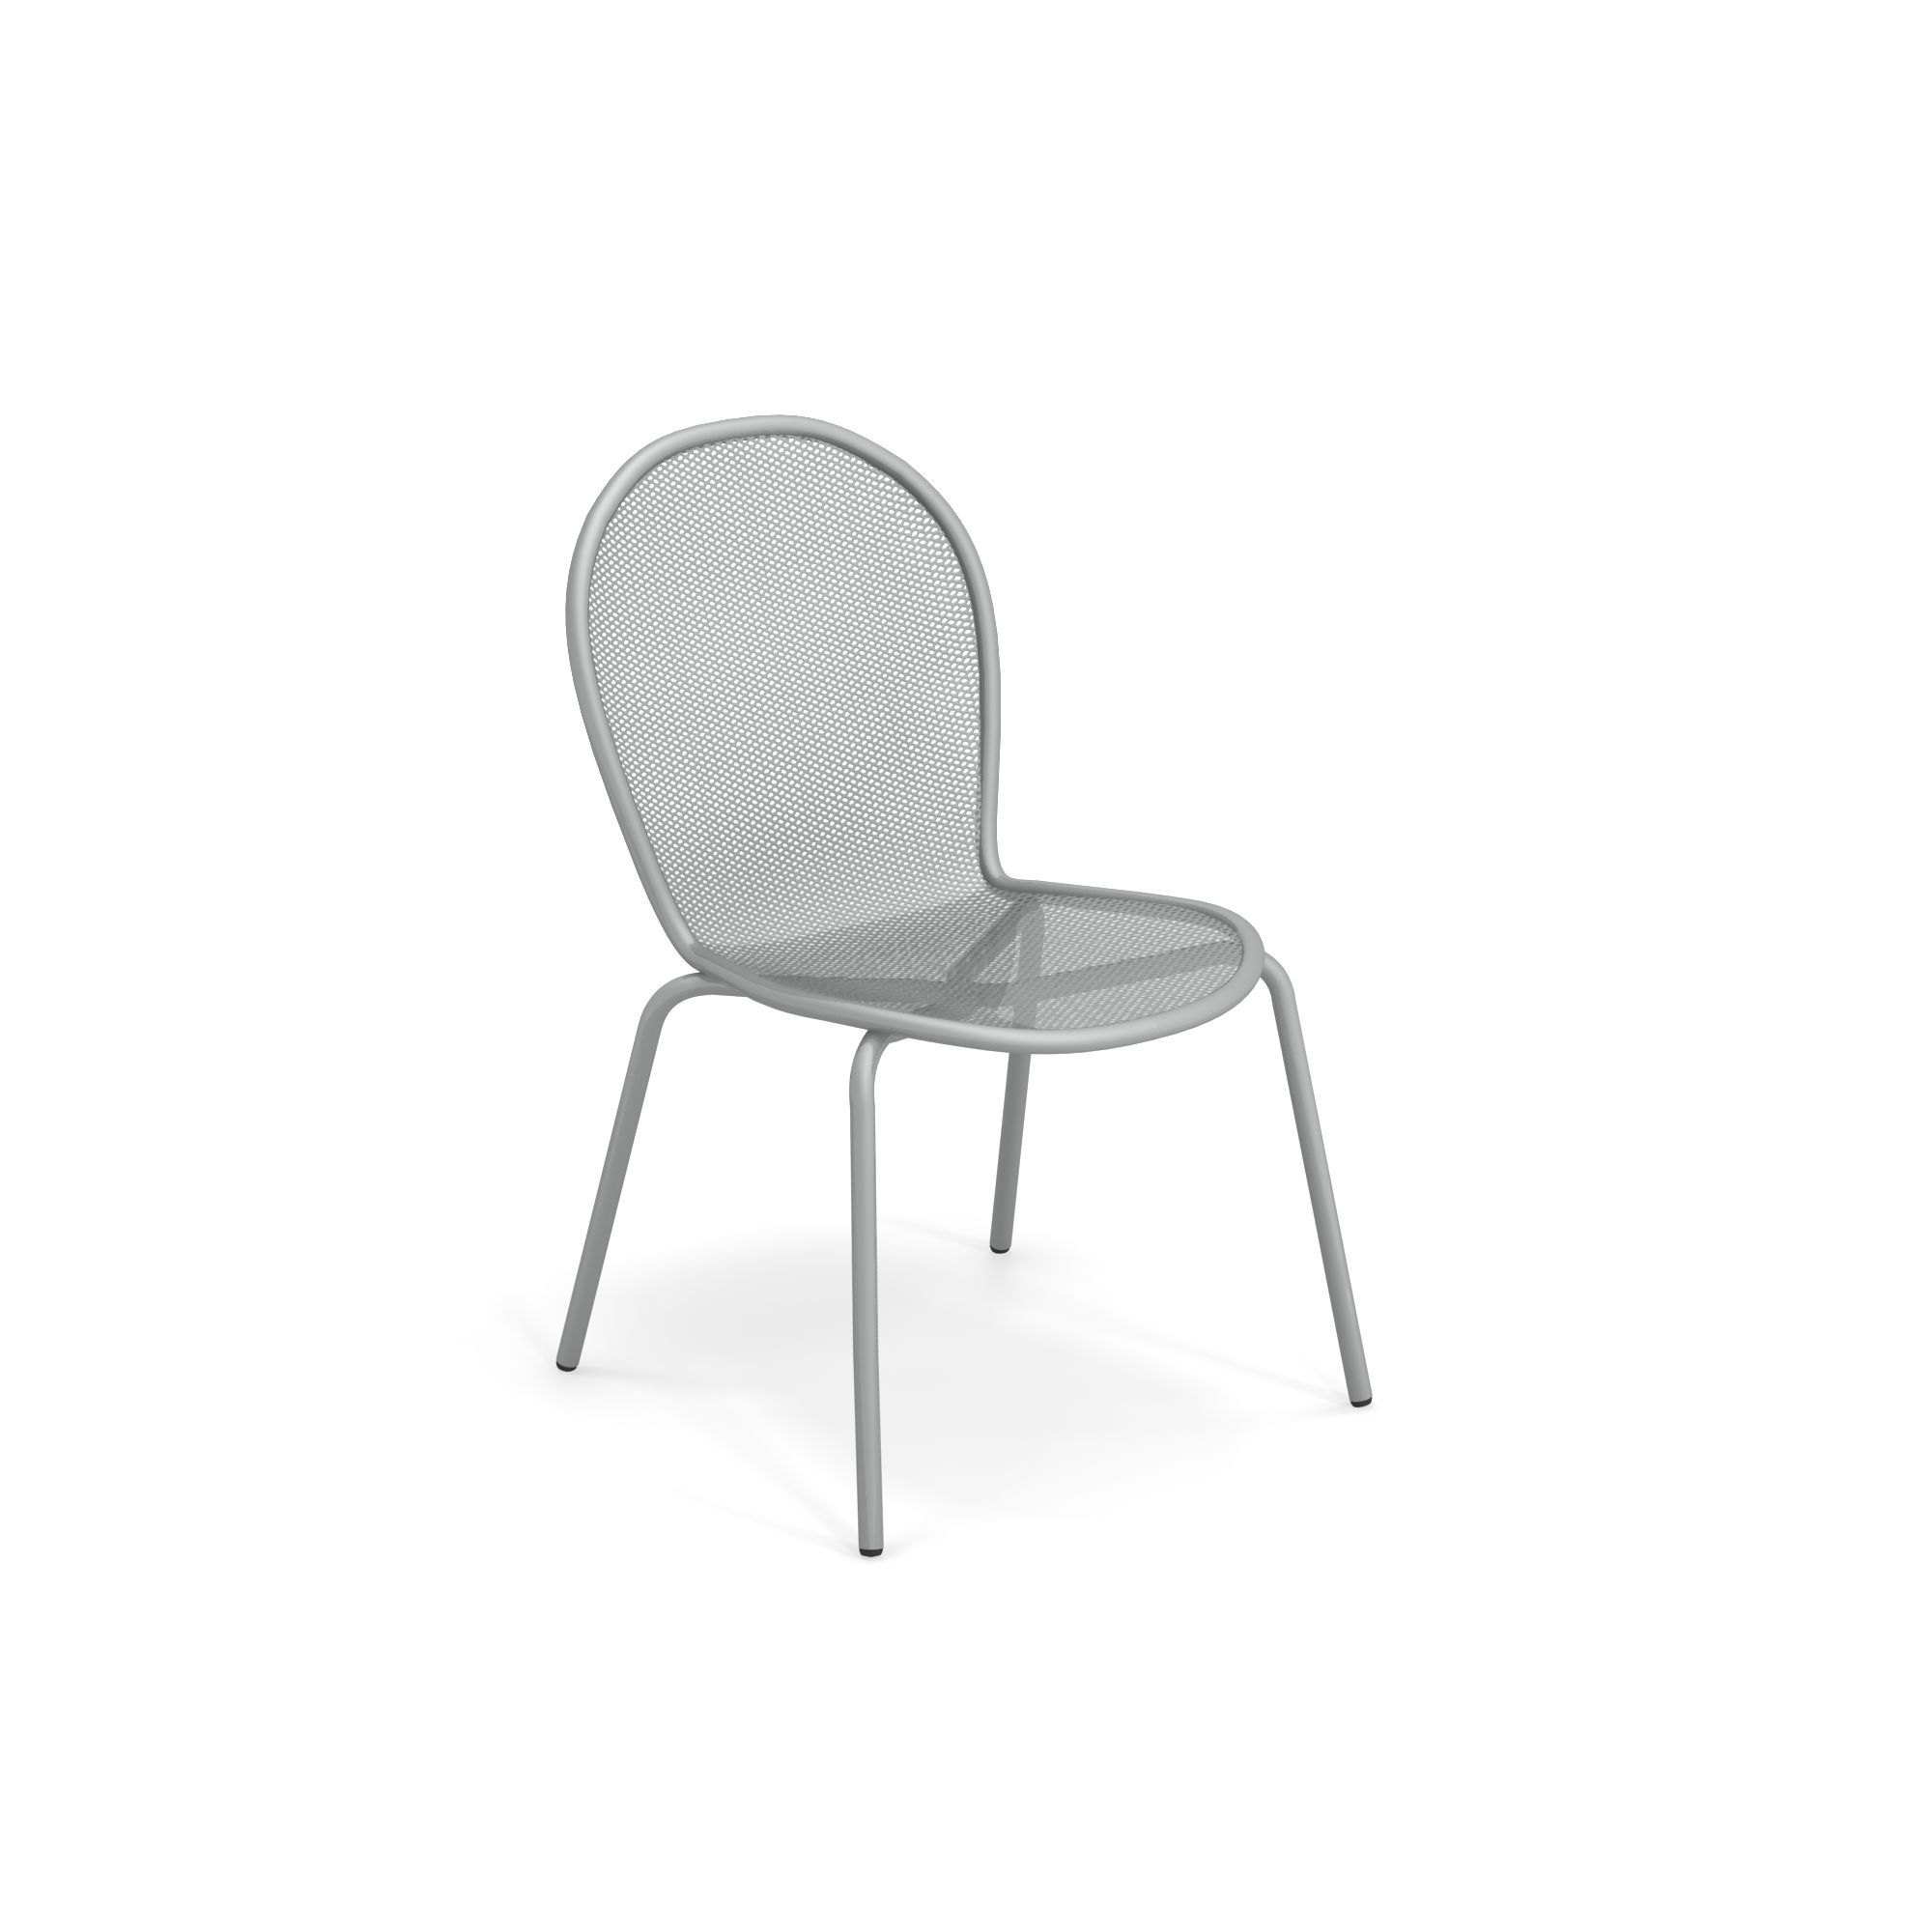 emuamericas, llc 111-20 chair, side, stacking, outdoor